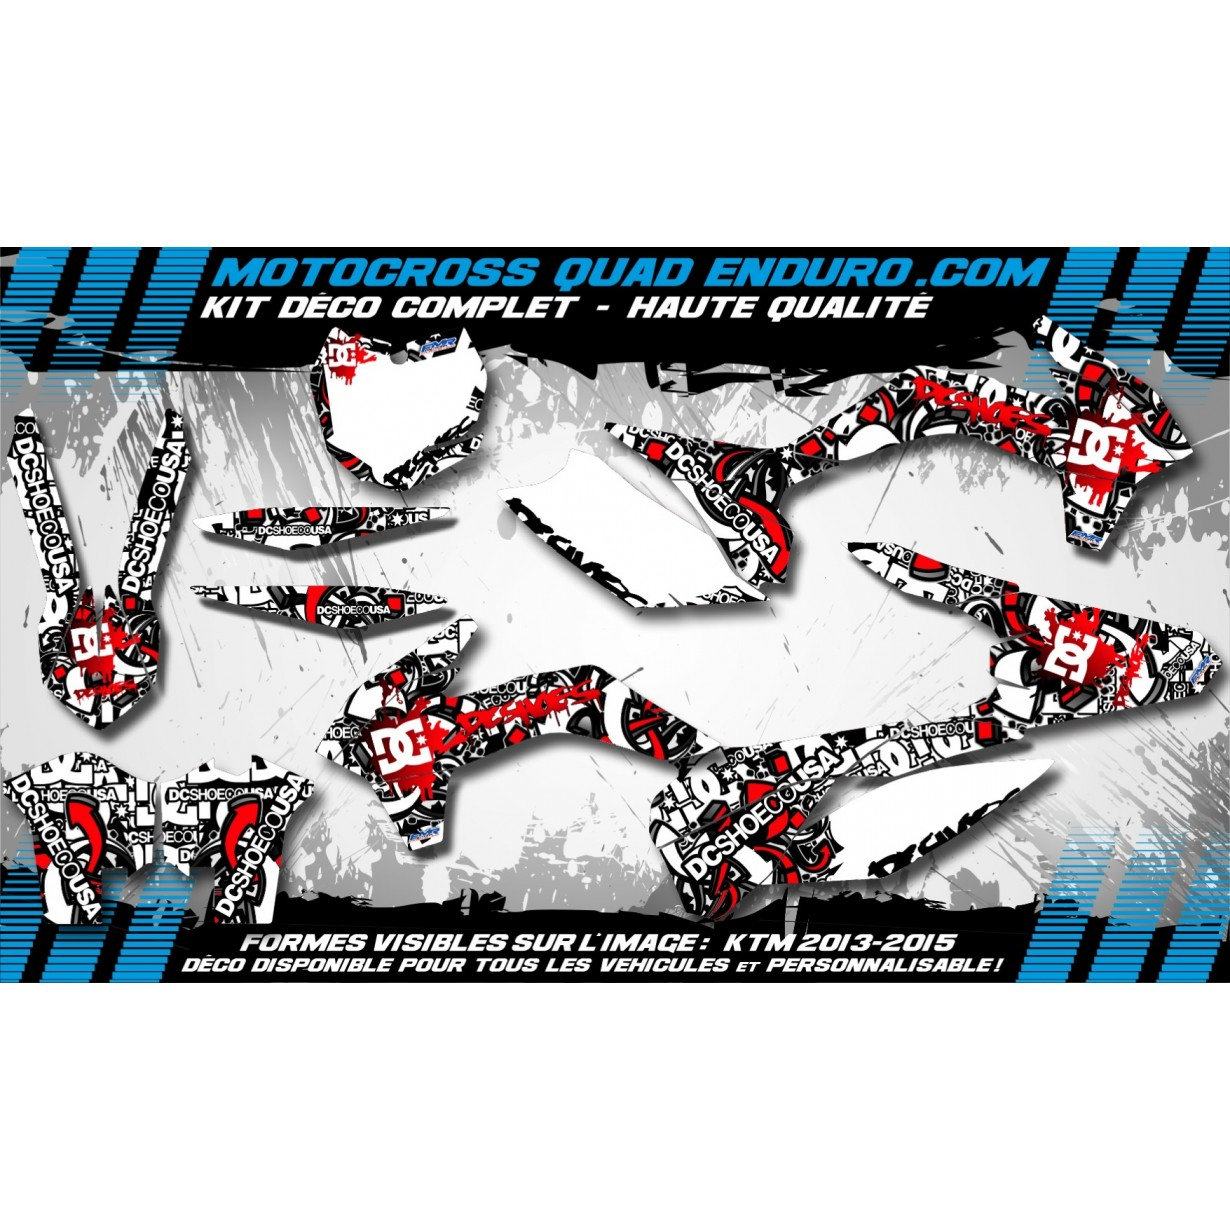 KIT DÉCO Perso 150-230 CRF 03-07 DC B&W MA15A